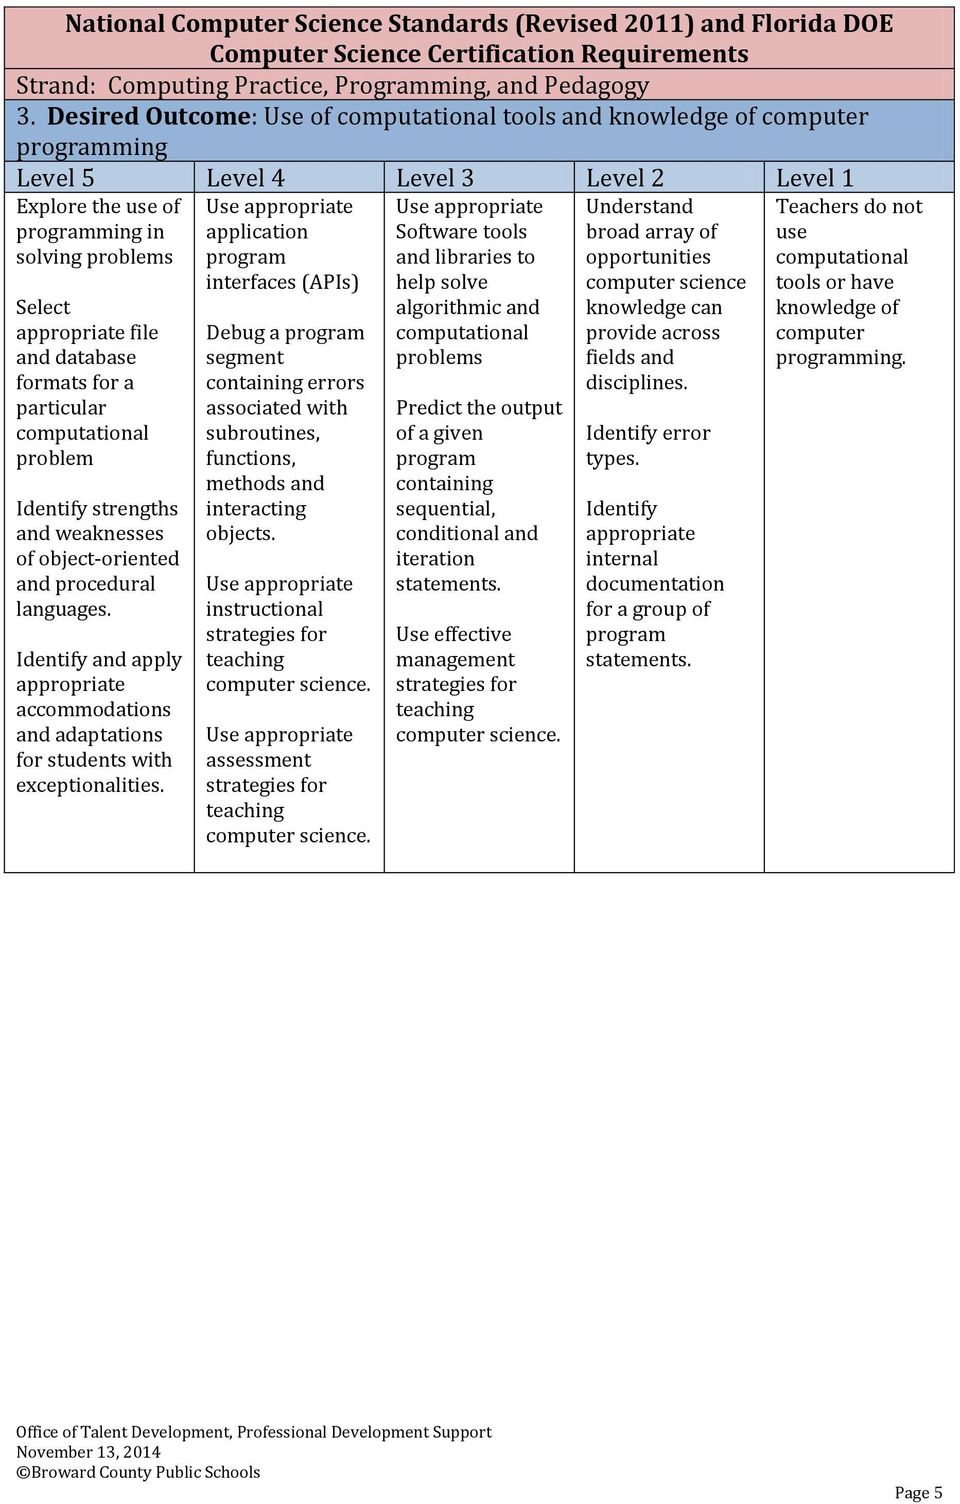 particular computational problem strengths and weaknesses of object-oriented and procedural languages. and apply appropriate accommodations and adaptations for students with exceptionalities.